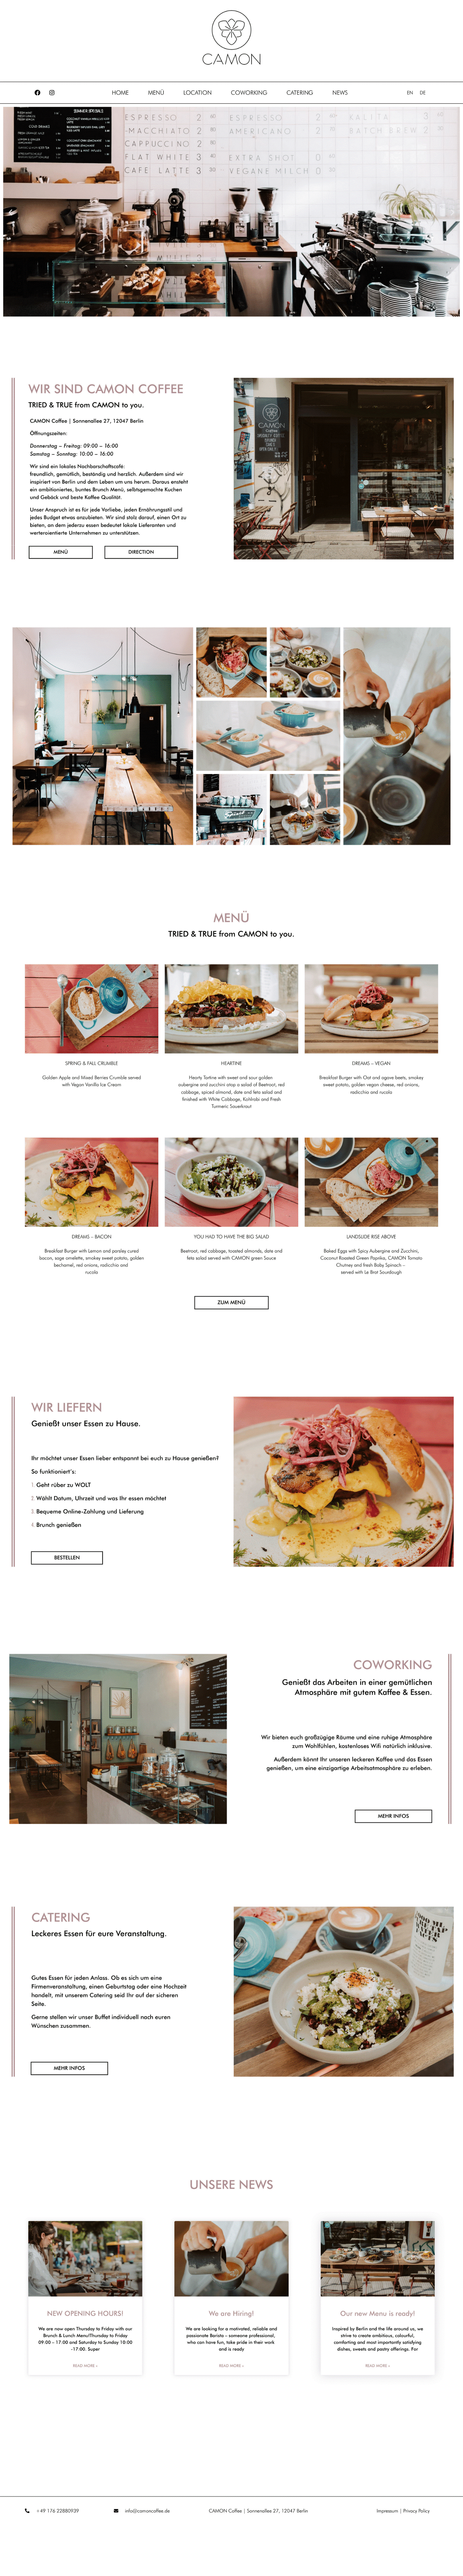 Website Project 2